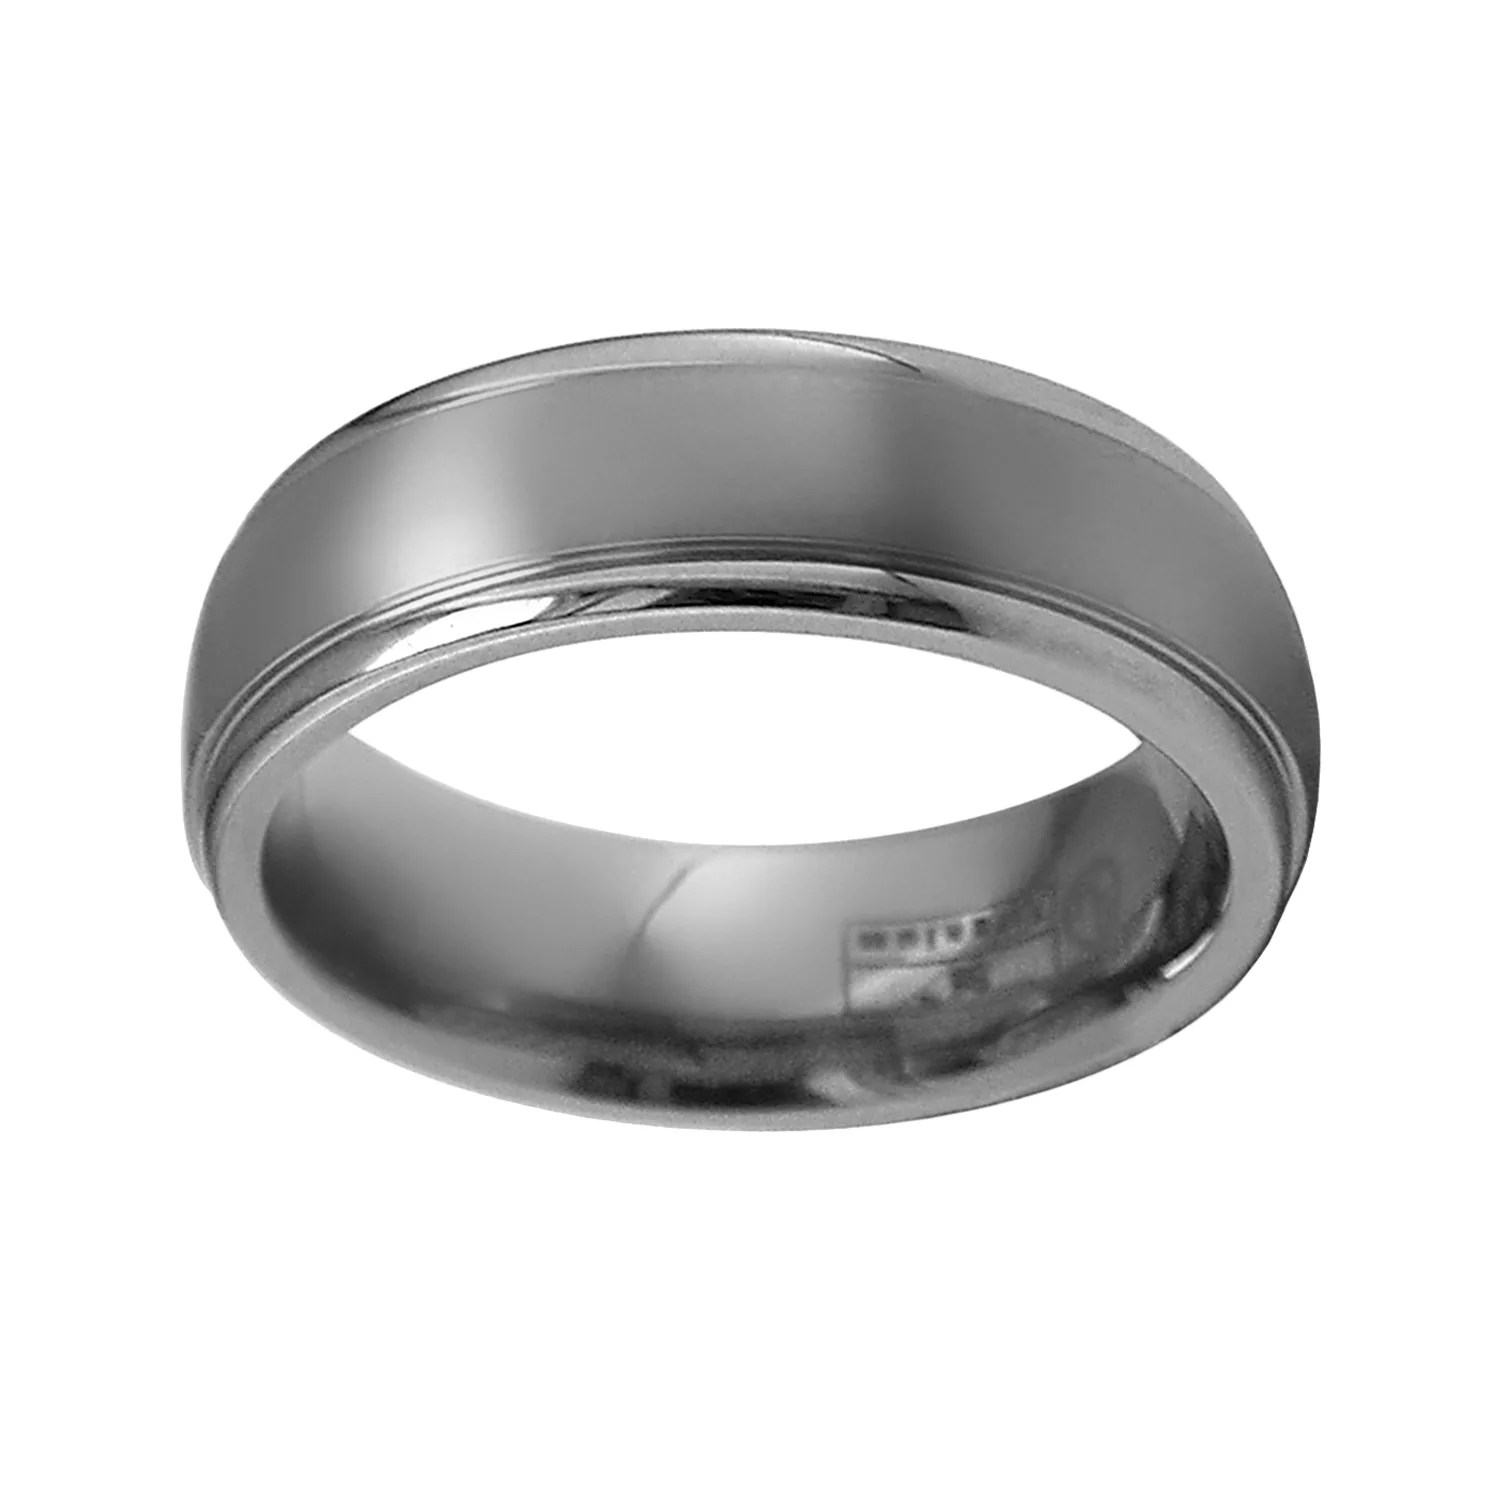 mens titanium wedding bands rings jewelry wedding bands men STI by Spectore Gray Titanium Striped Wedding Band Men